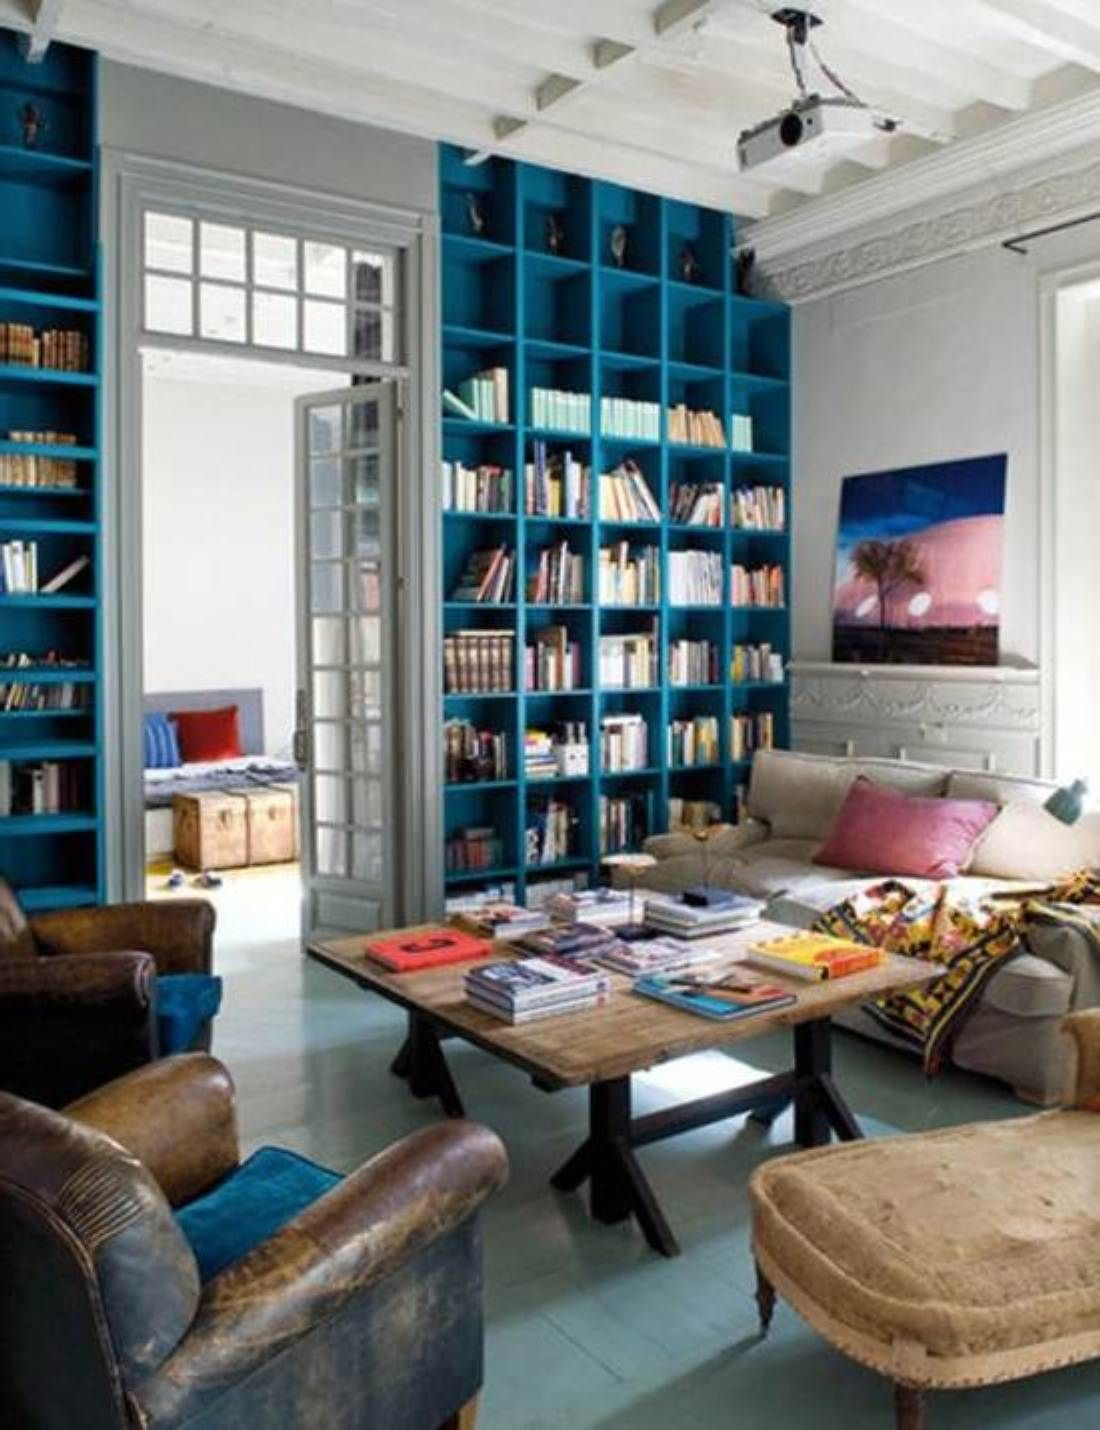 home library with blue | turquoise | teal shelves and bookcases